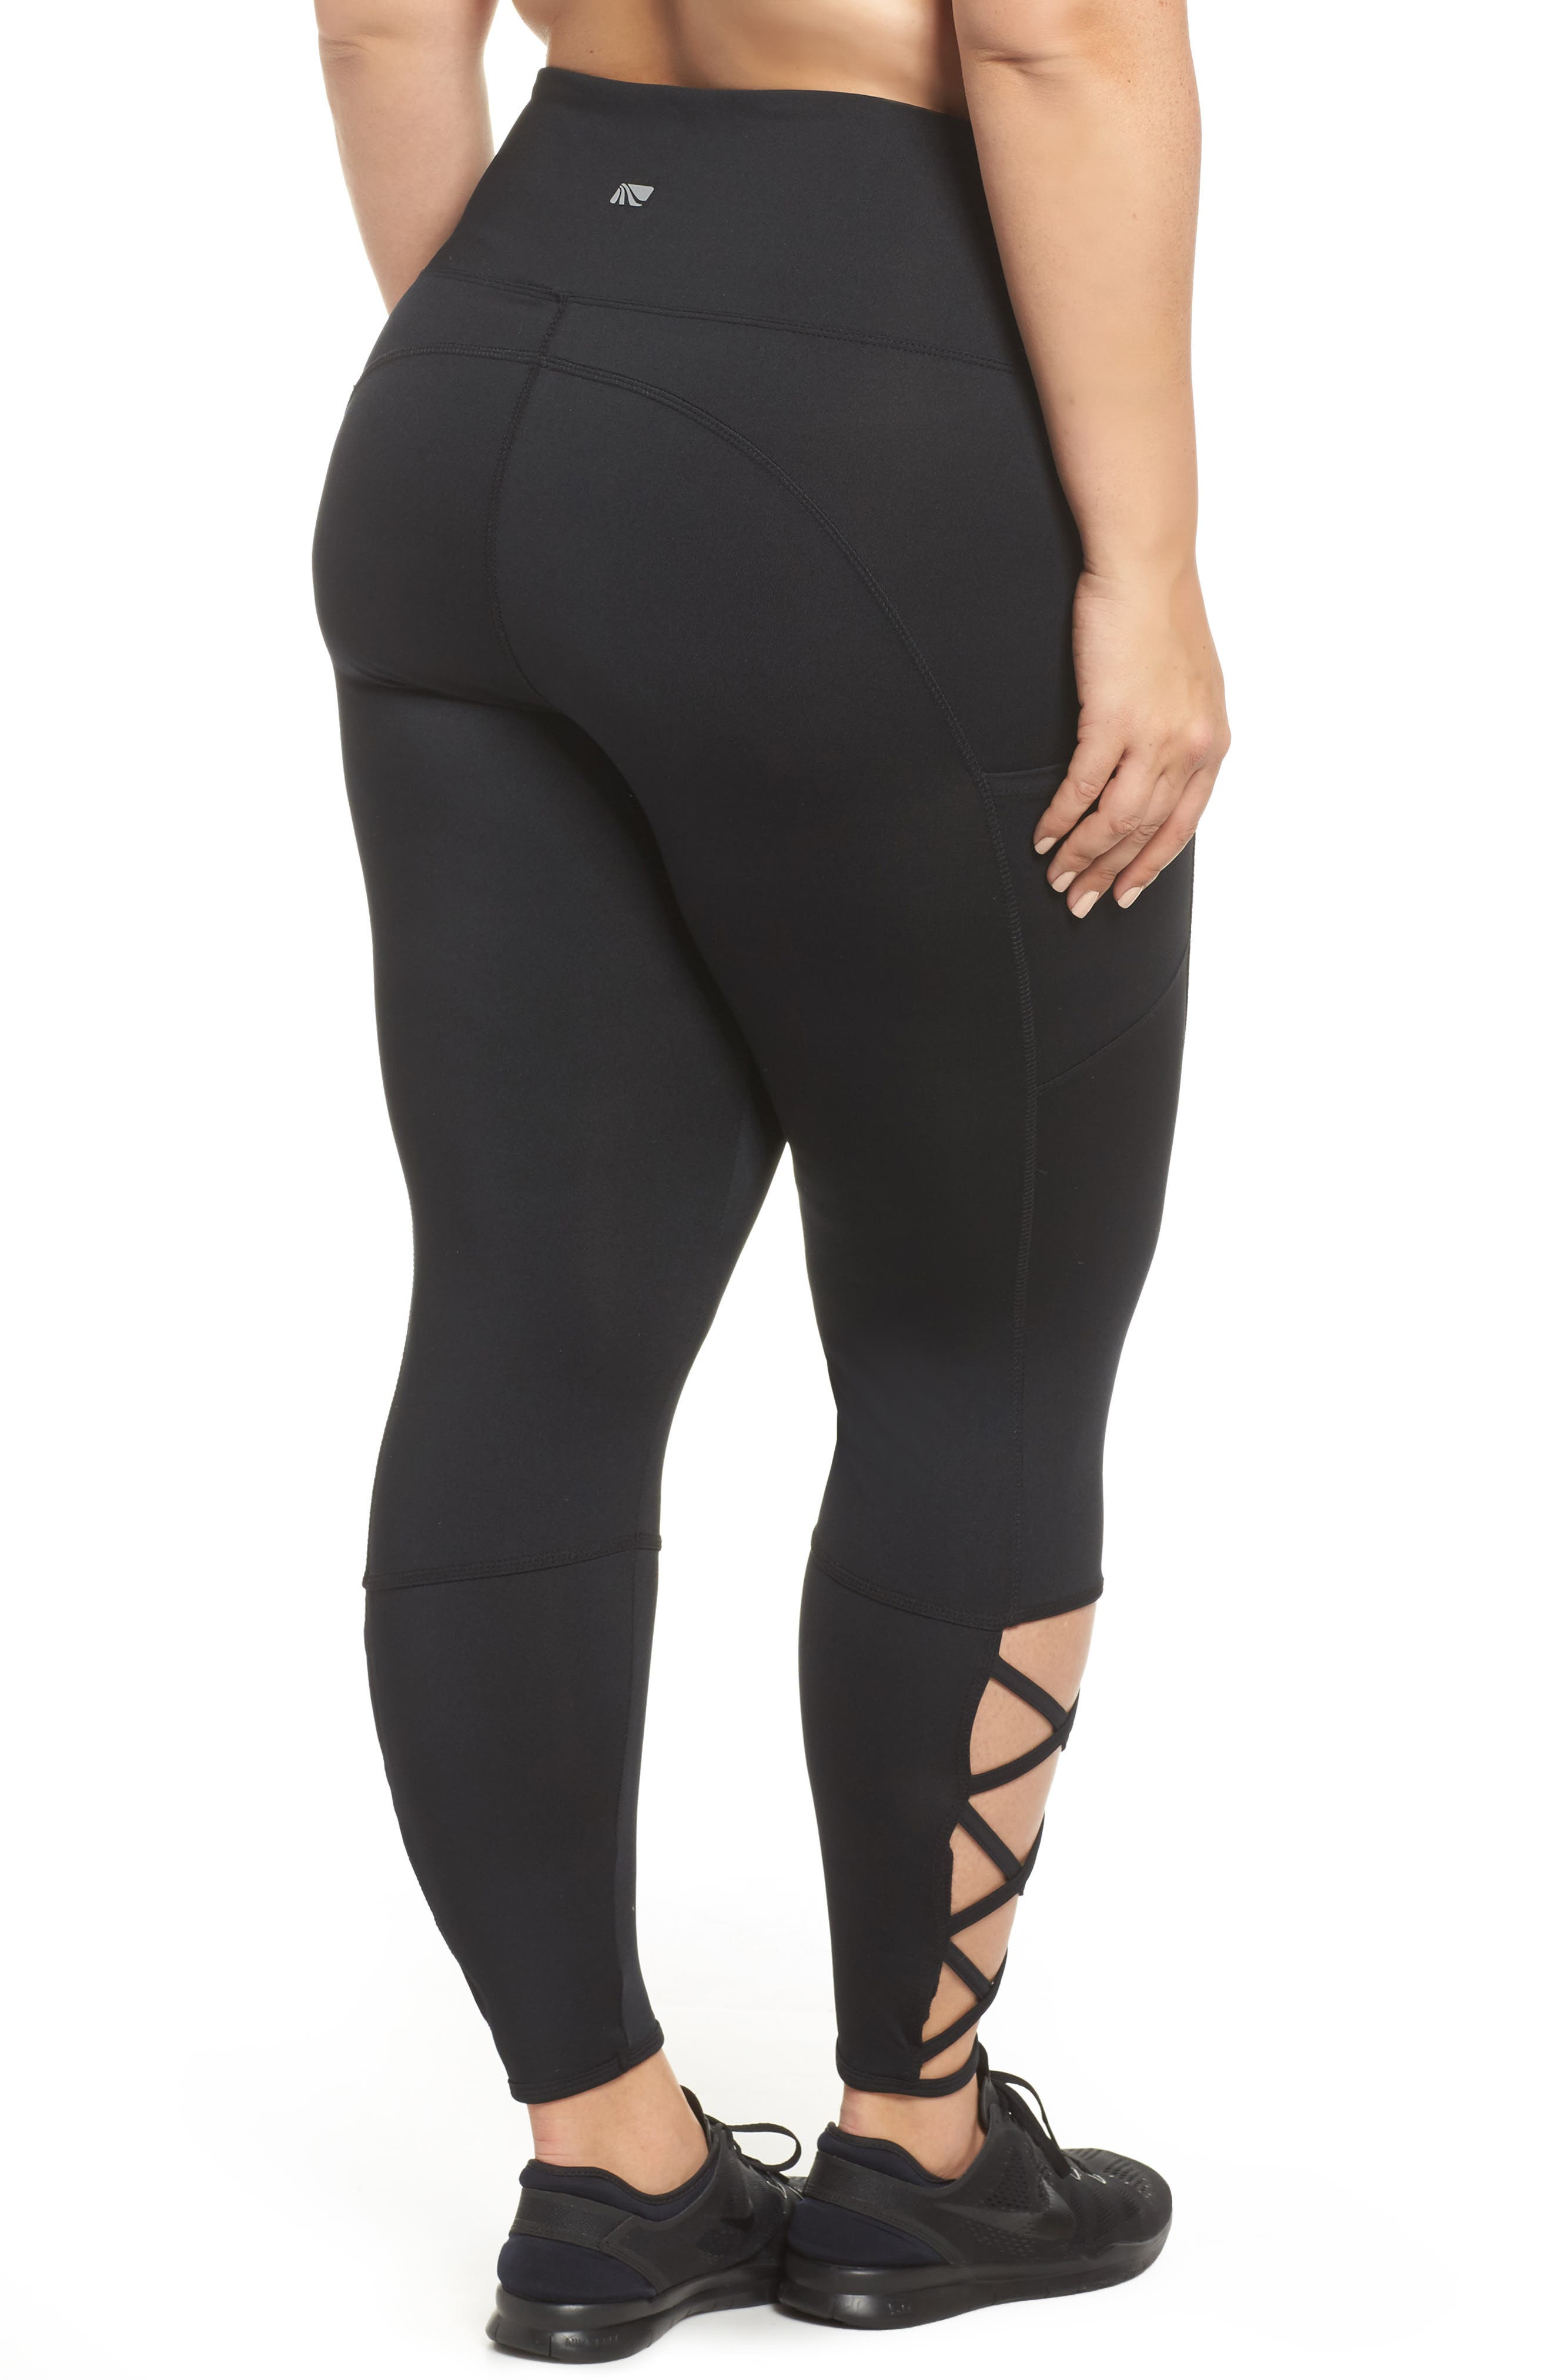 Lux Ankle Leggings,                             Alternate thumbnail 2, color,                             001